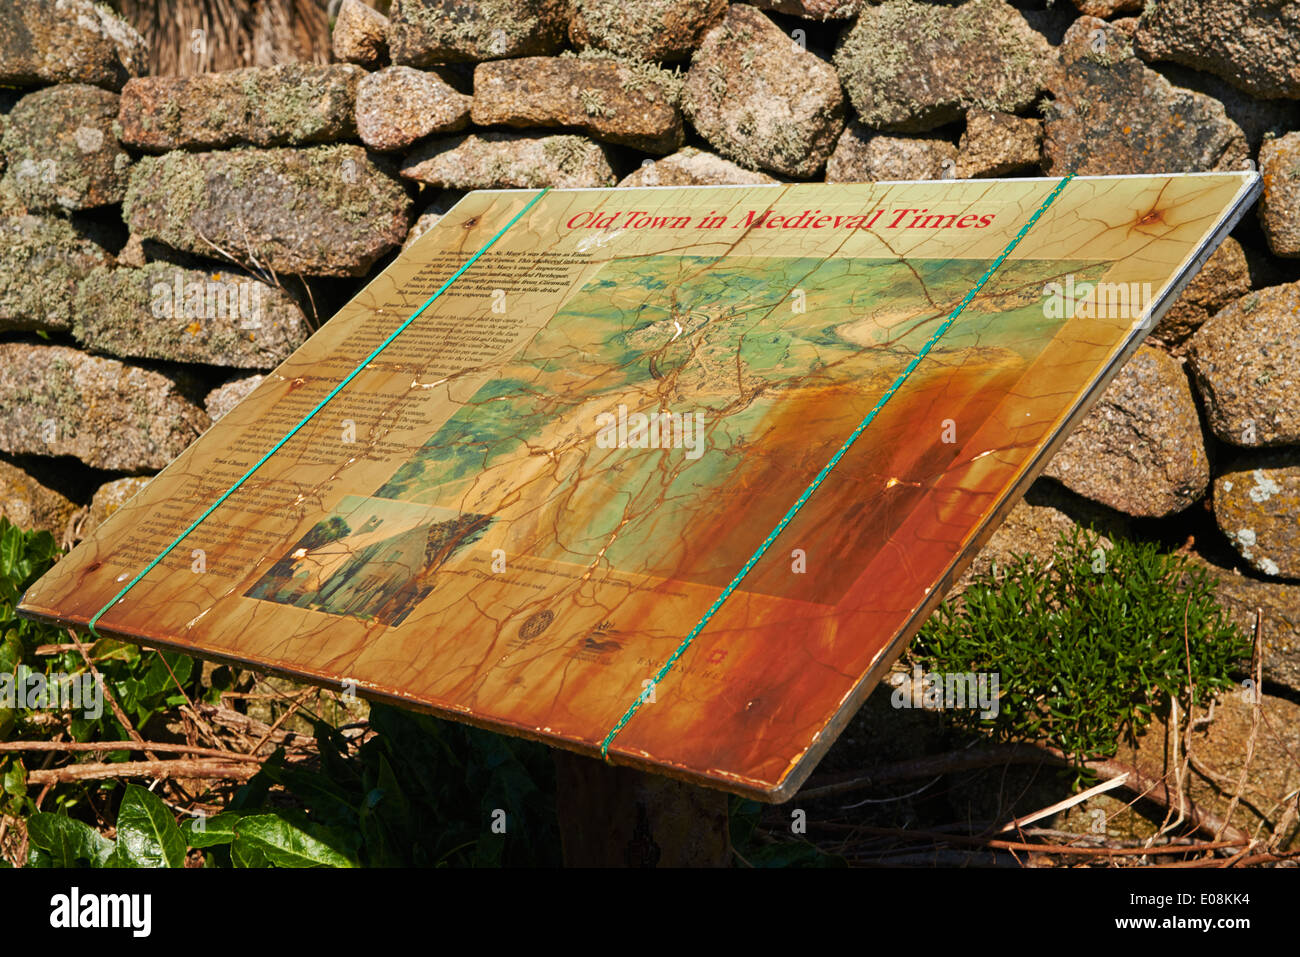 Old Town in medieval times sign at Old Town, St Marys, Isles of Scilly, Scillies, Cornwall in April - Stock Image